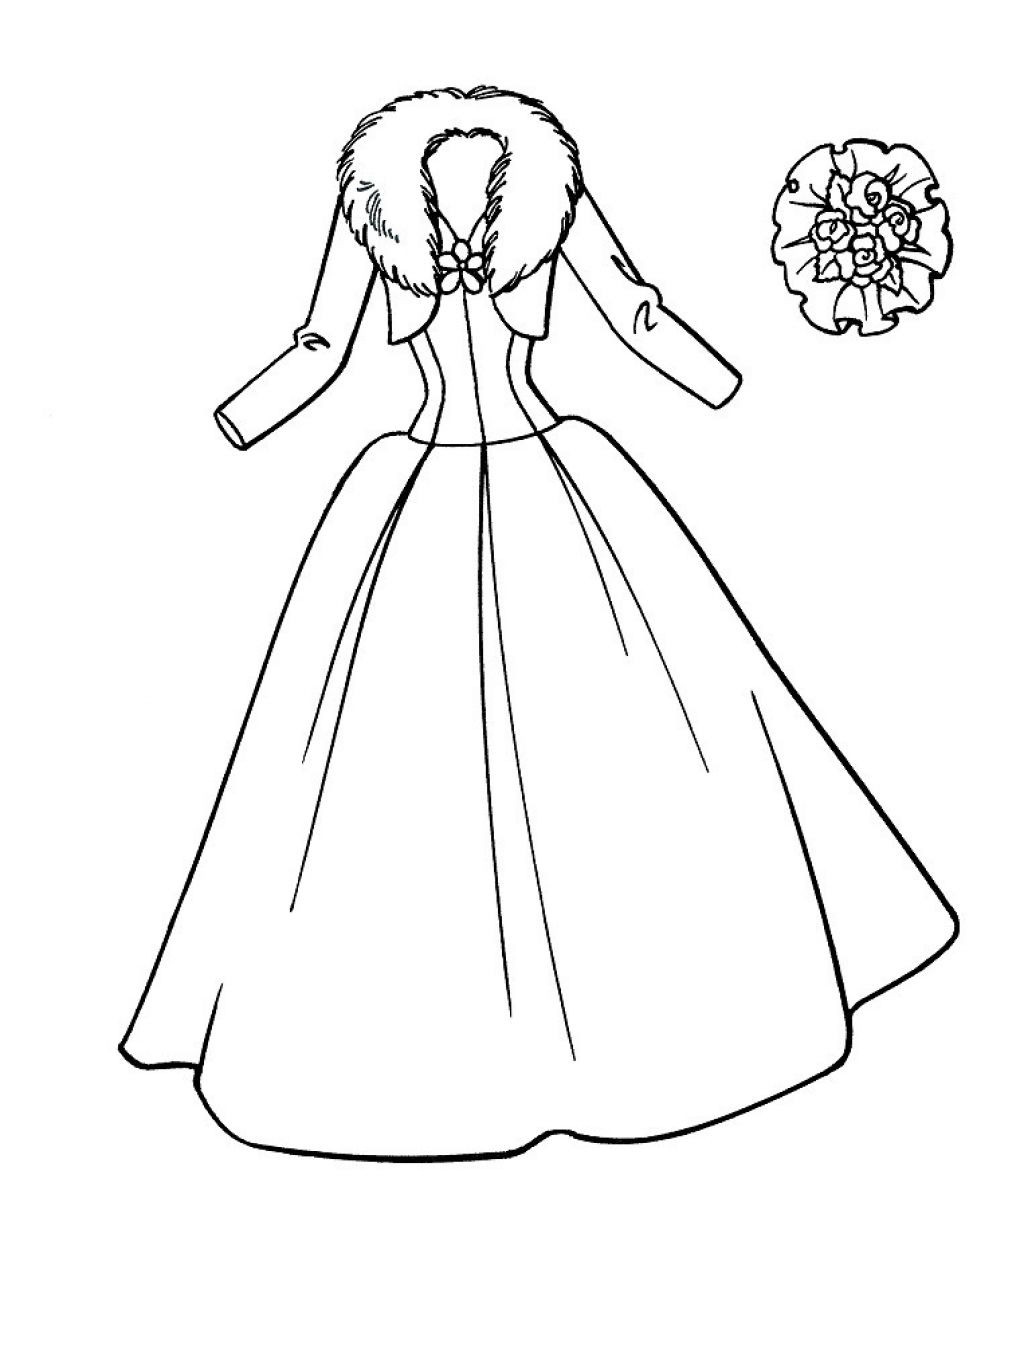 Best ideas about Coloring Pages For Girls Dresses . Save or Pin printable wedding dress coloring pages for girls Now.